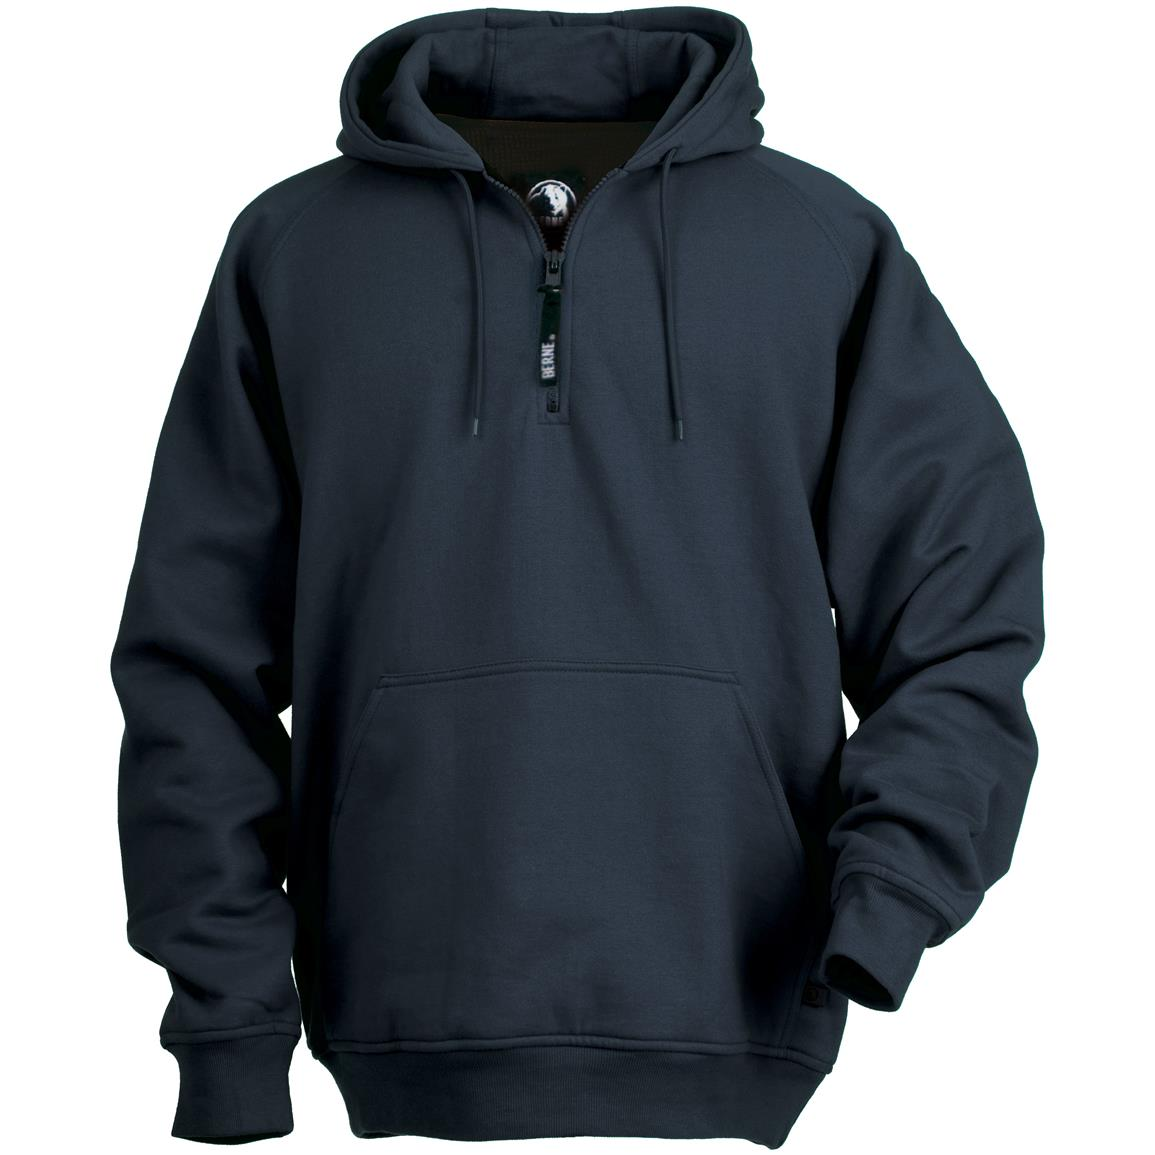 Berne® 1/4-zip Hooded Sweatshirt, Navy